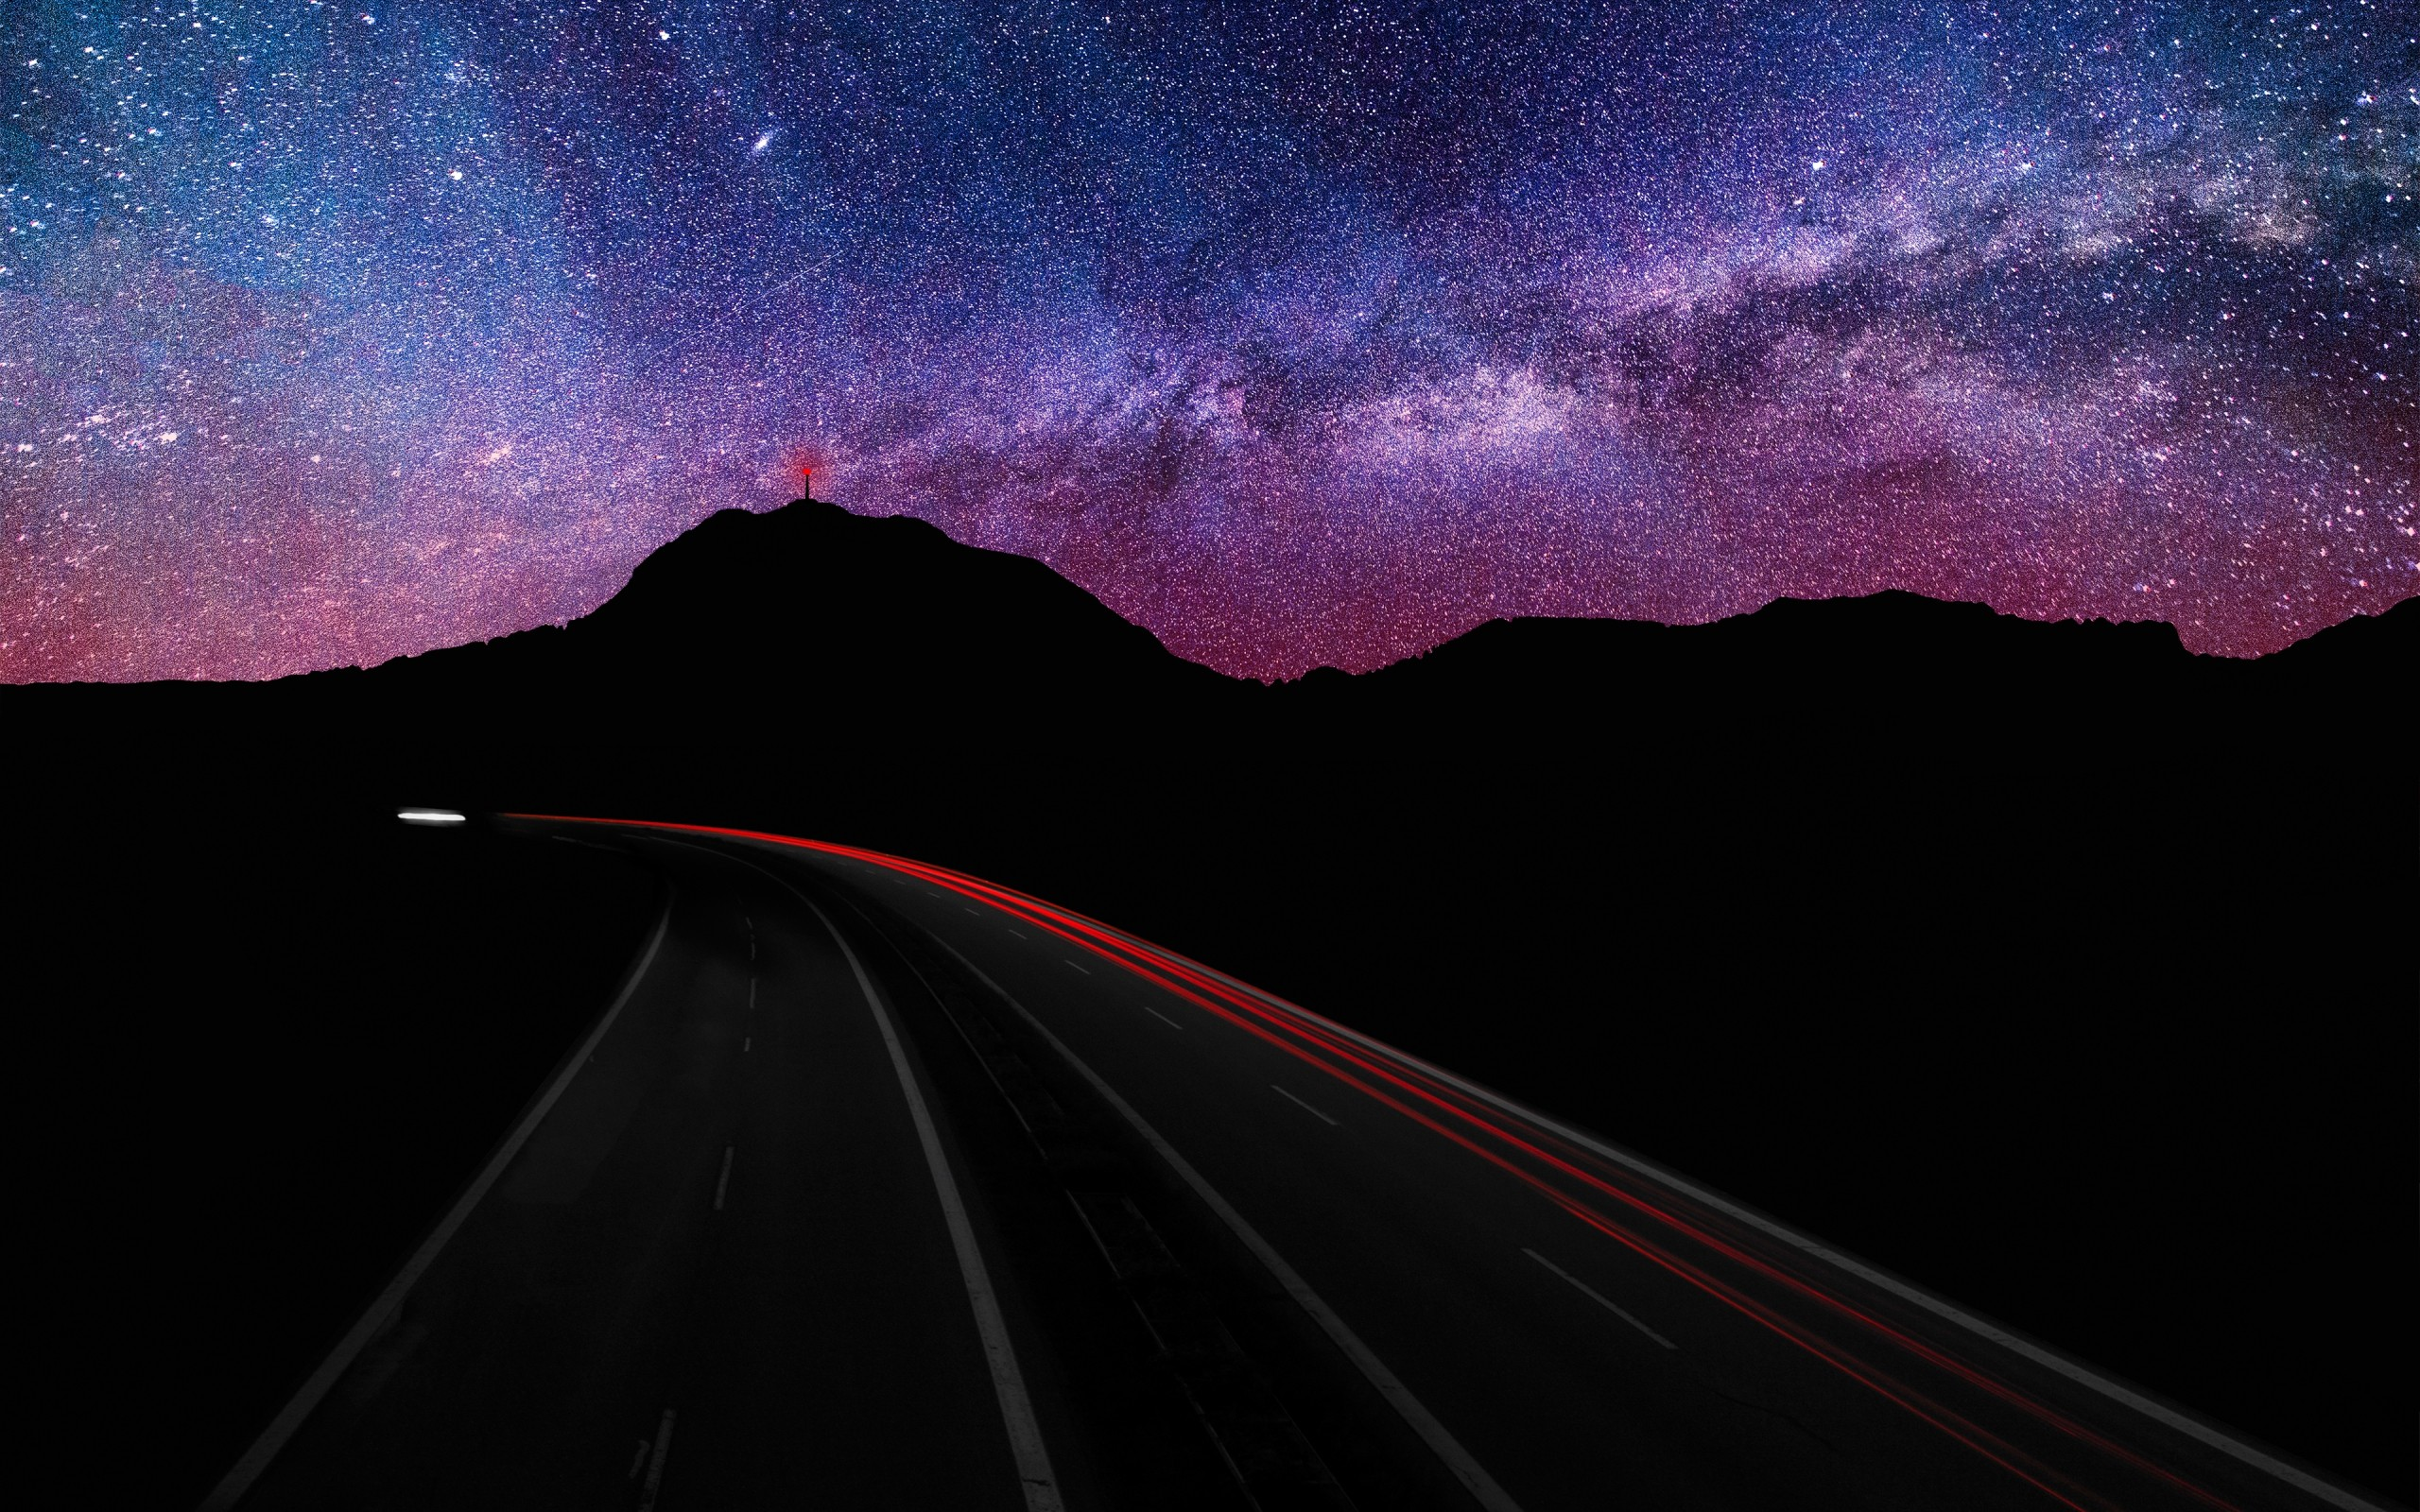 Blue Mountains Landscapes Nature Night Stars Purple Hills Roads Long Exposure Milky Way Hdr Photography Skyscapes